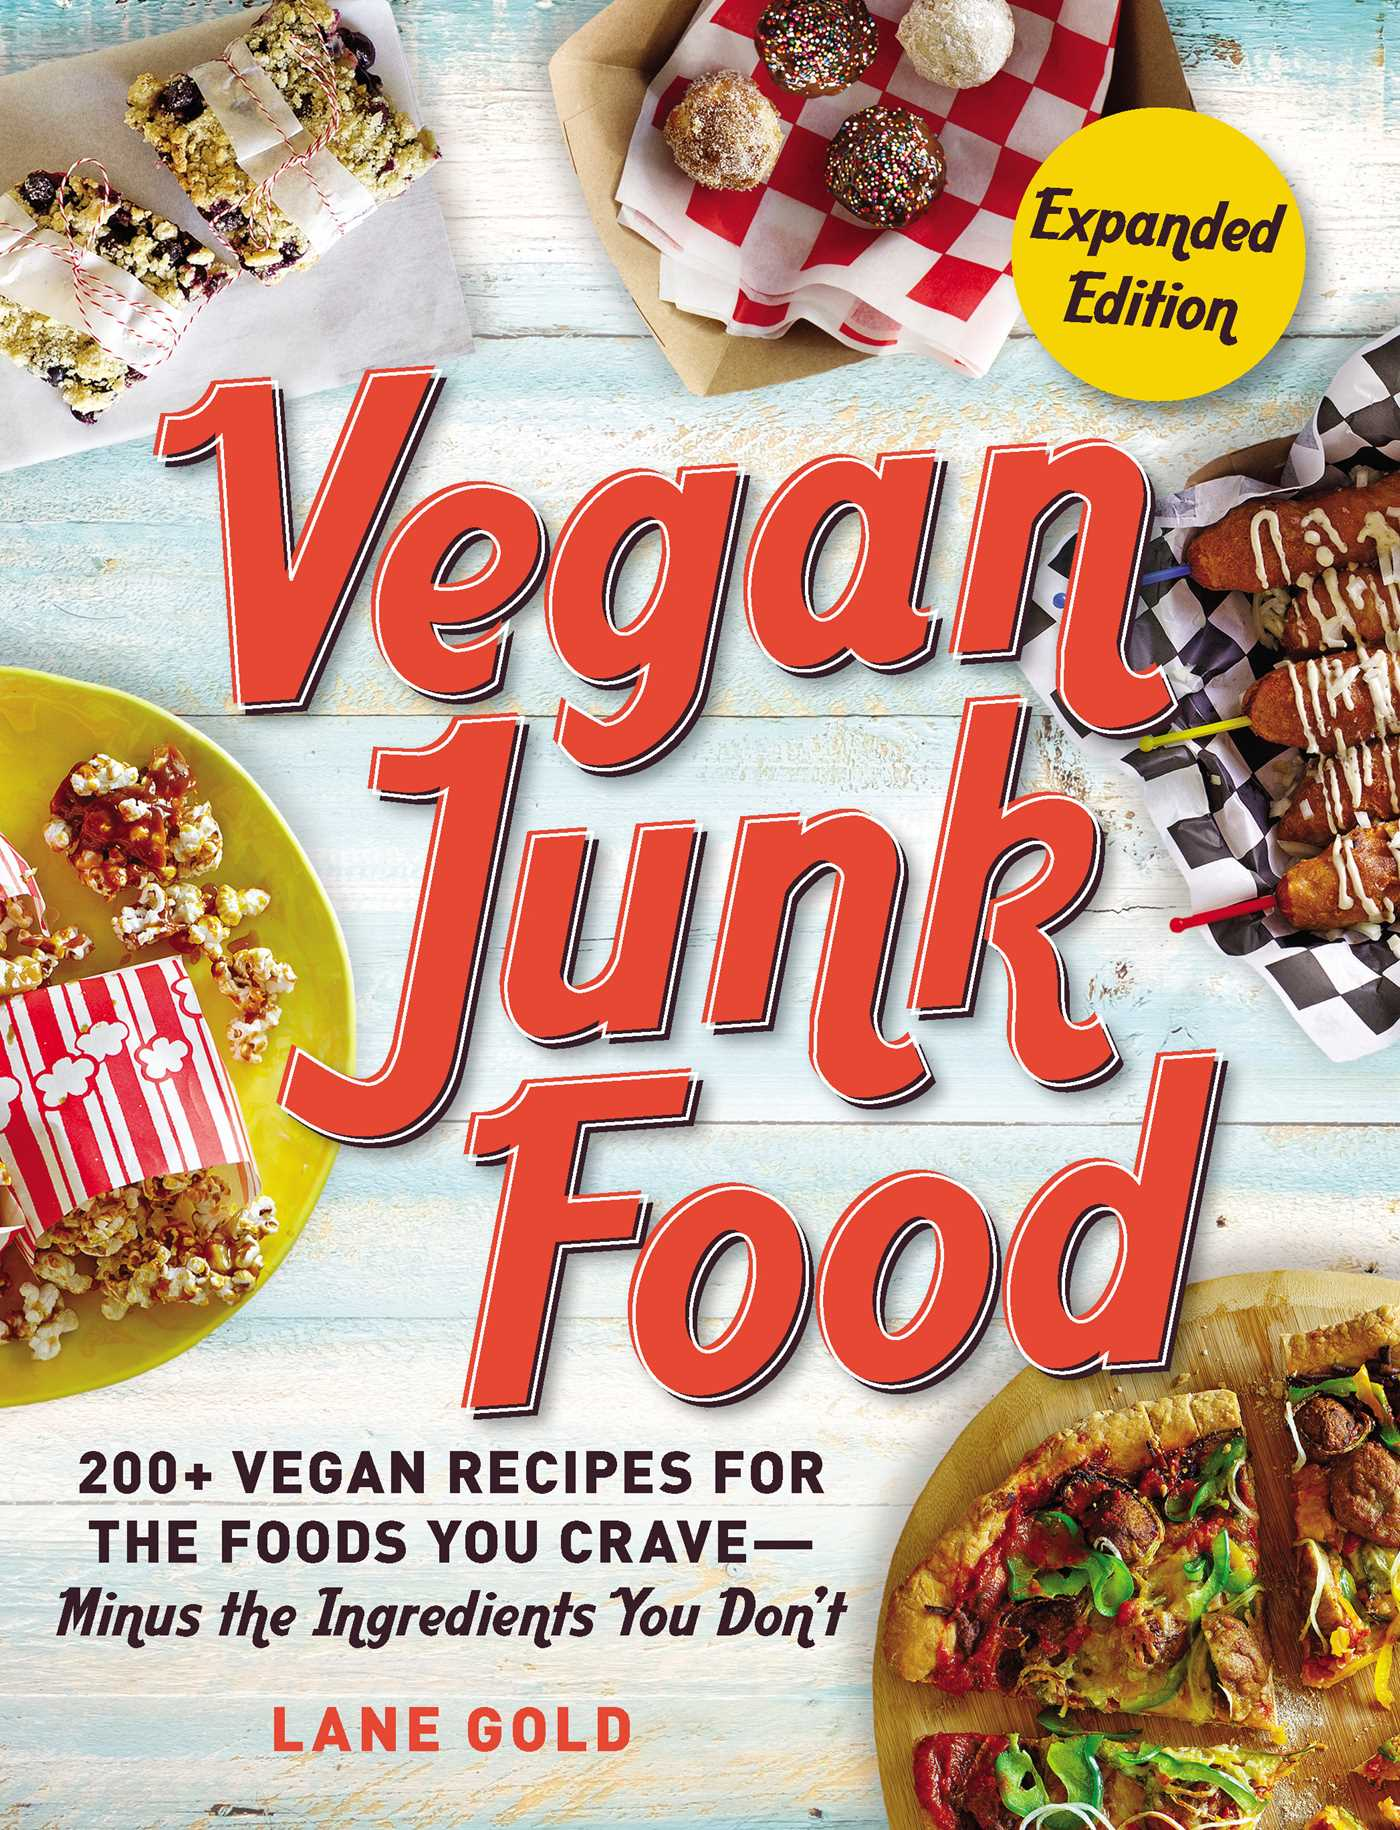 Vegan junk food expanded edition book by lane gold official book cover image jpg vegan junk food expanded edition forumfinder Gallery